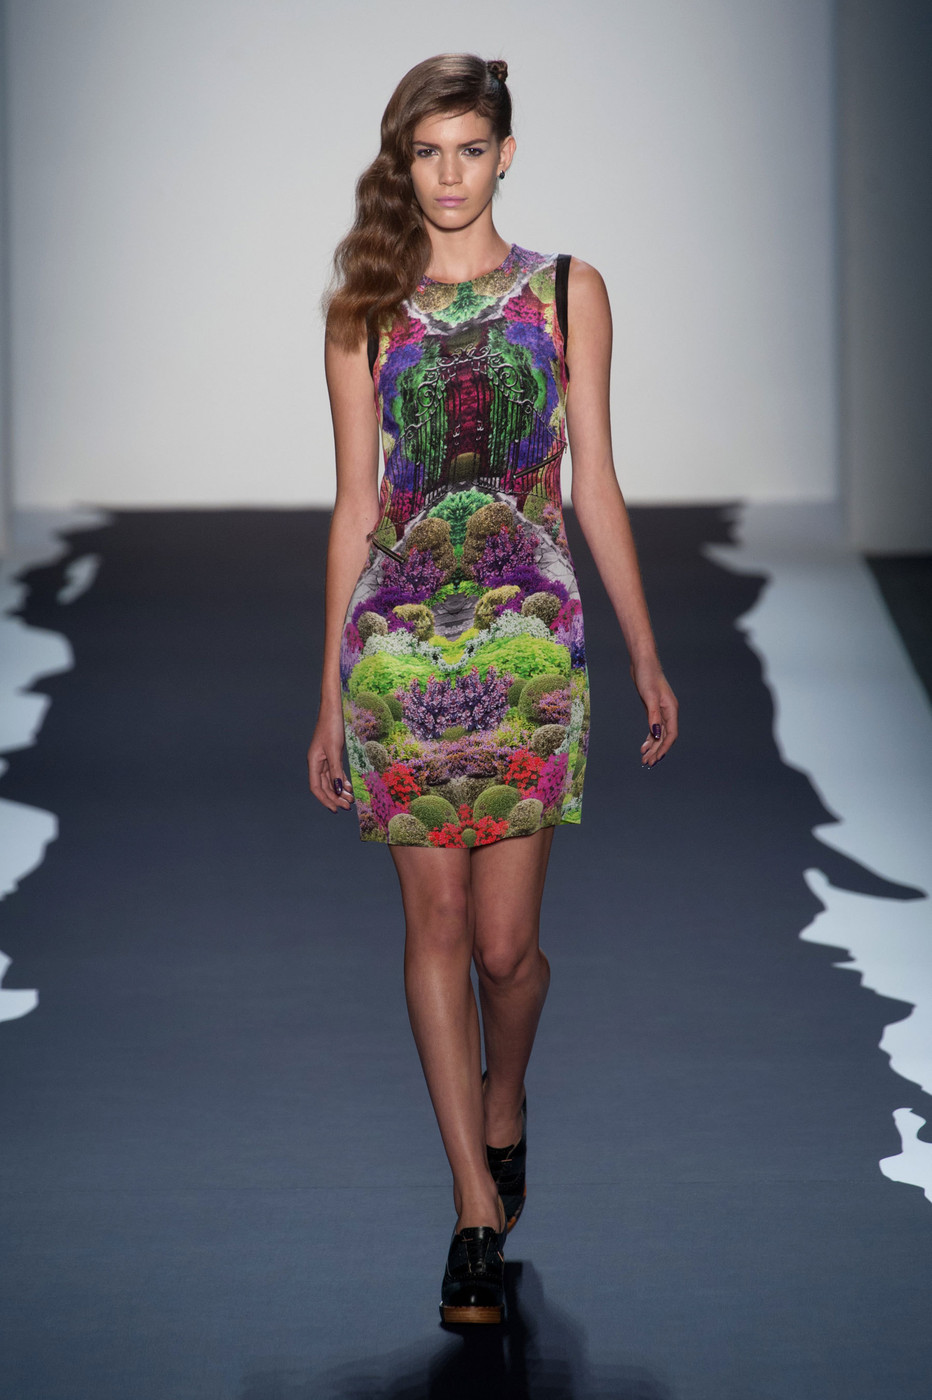 emerson by jackie fraser swan at new york fashion week spring